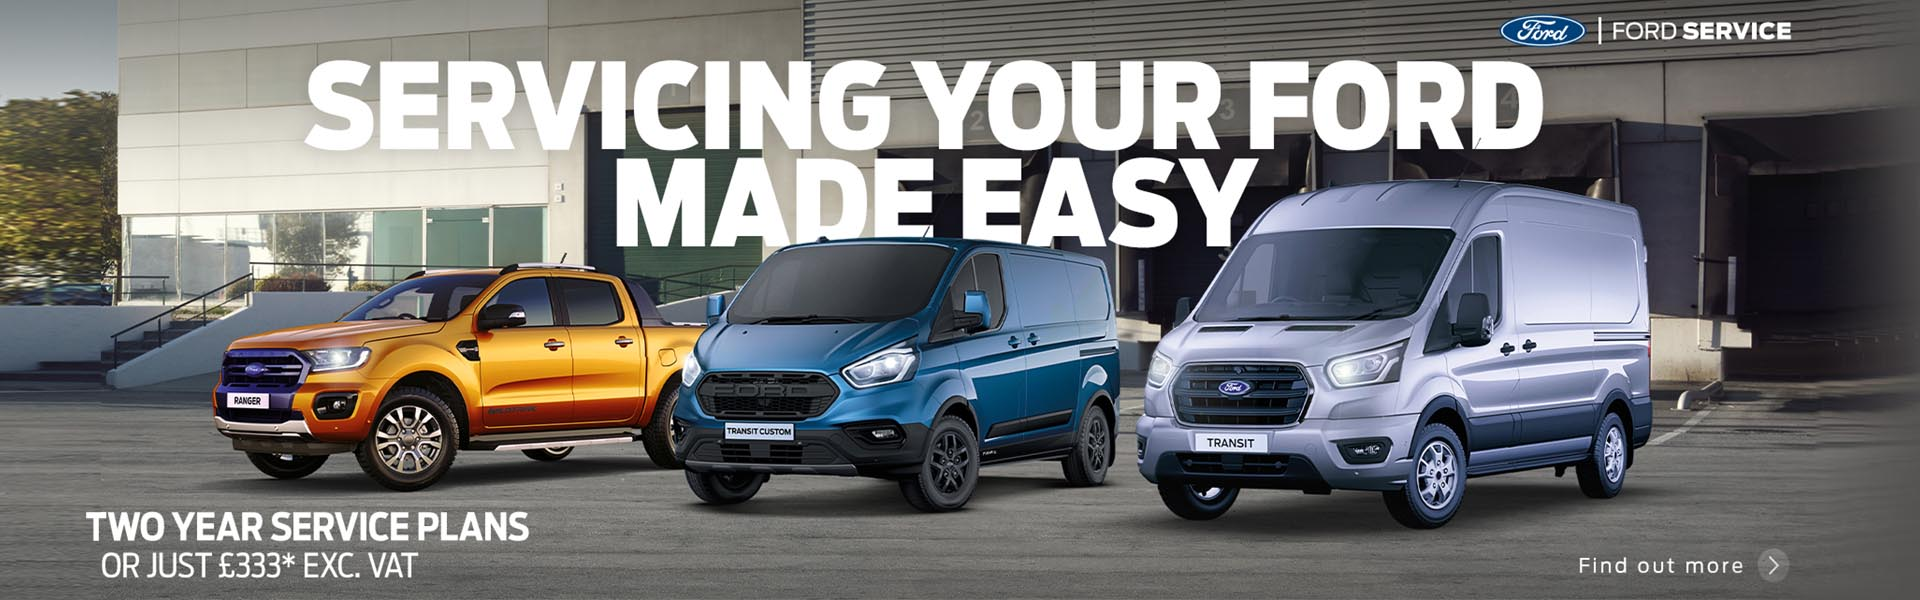 13503150_2020_Q3_FOB_Ford_Servicing_Homepage_Banner_1900x646_V2.jpg